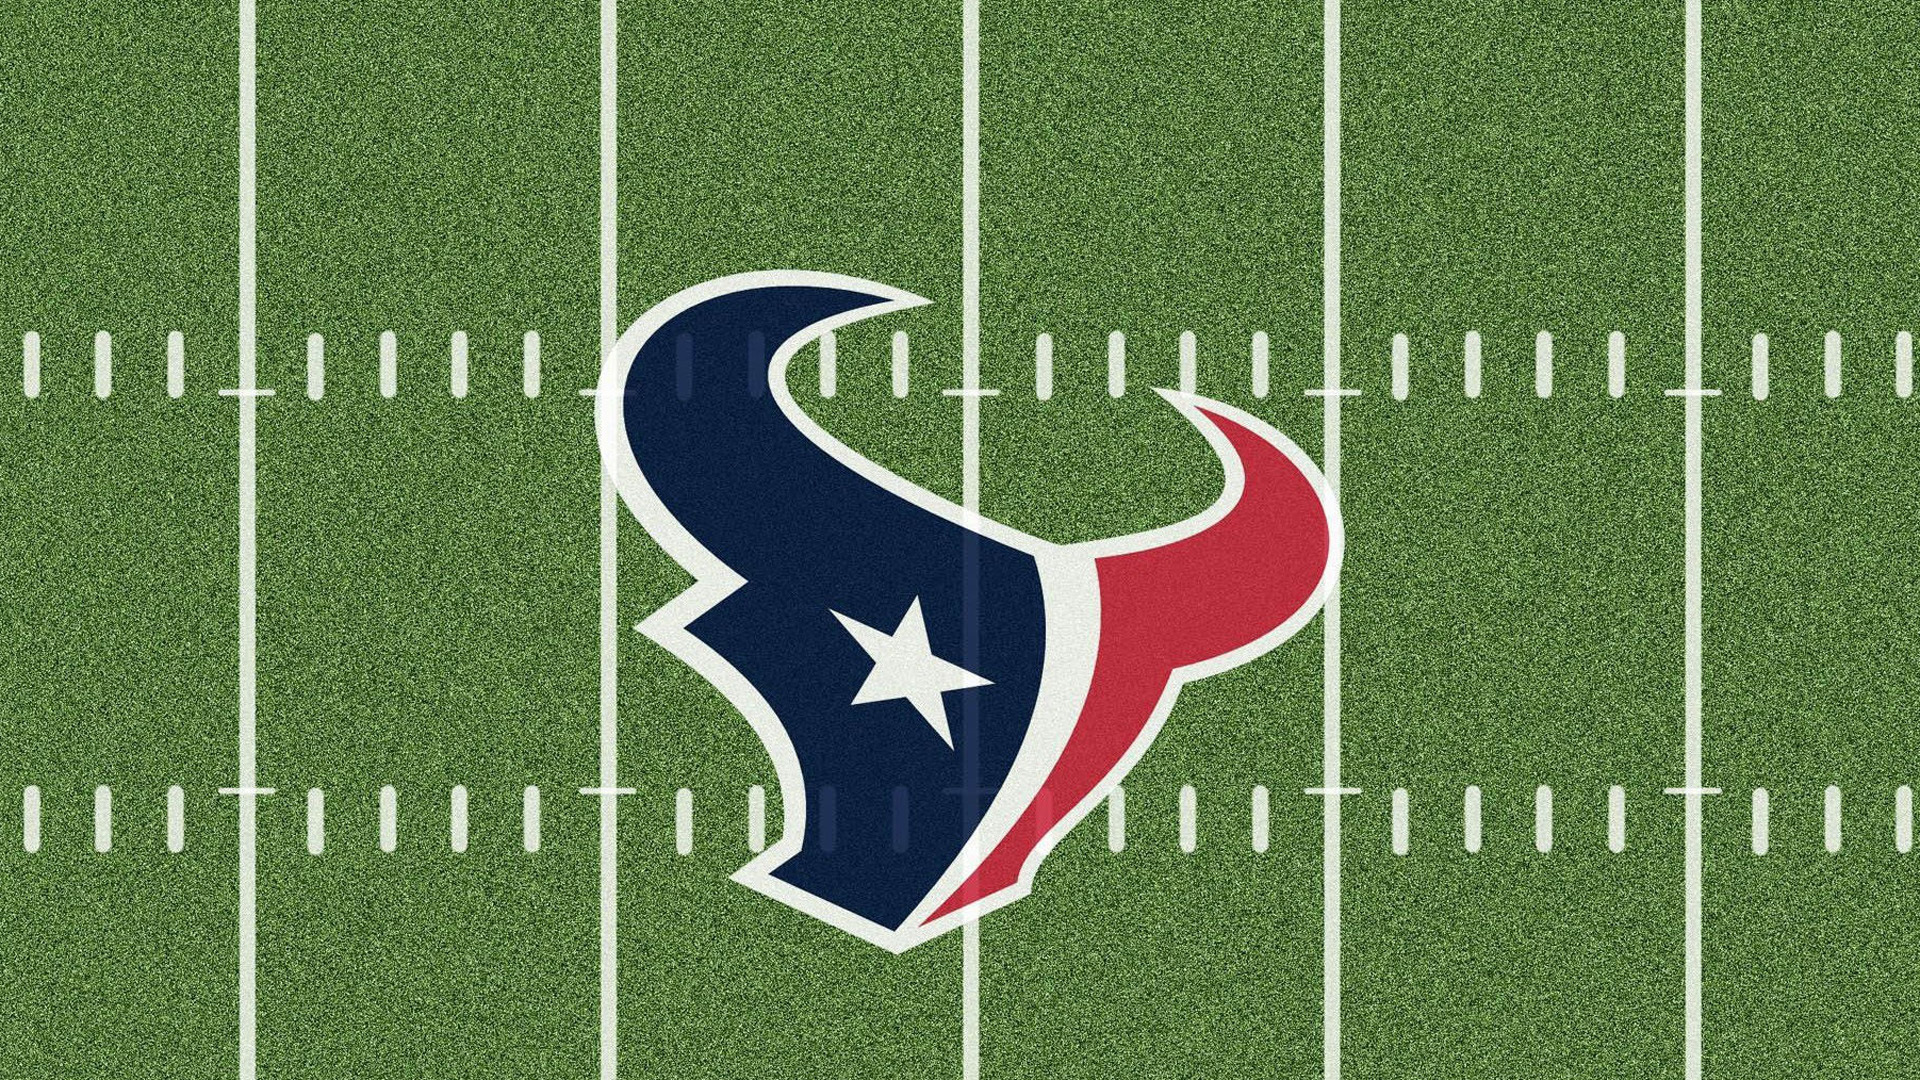 Houston Texans High Quality Wallpapers